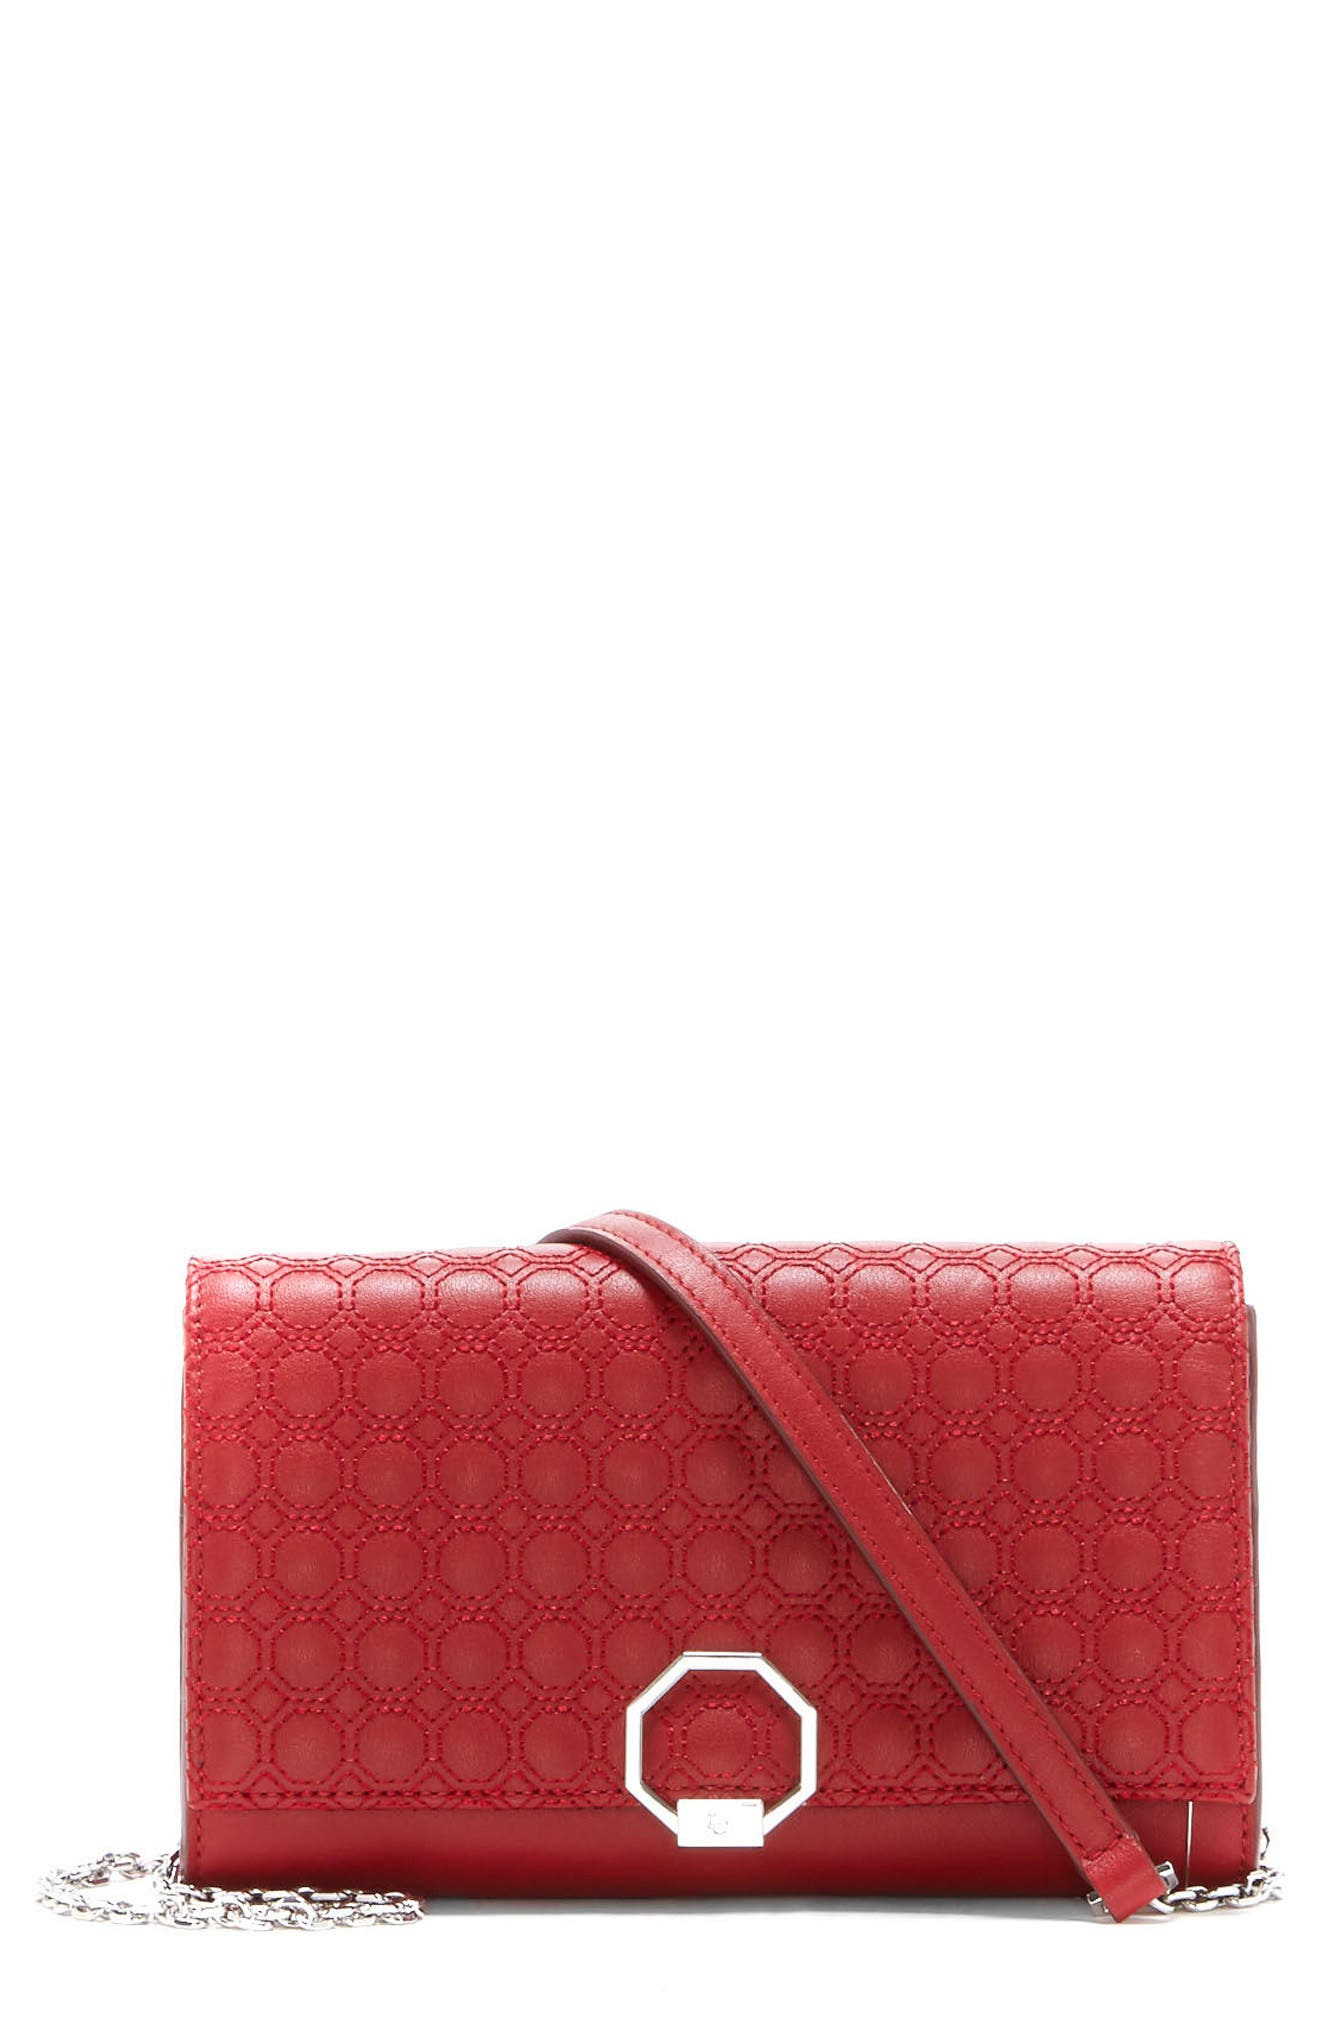 Main Image - Louise et Cie Celya Small Crossbody Bag